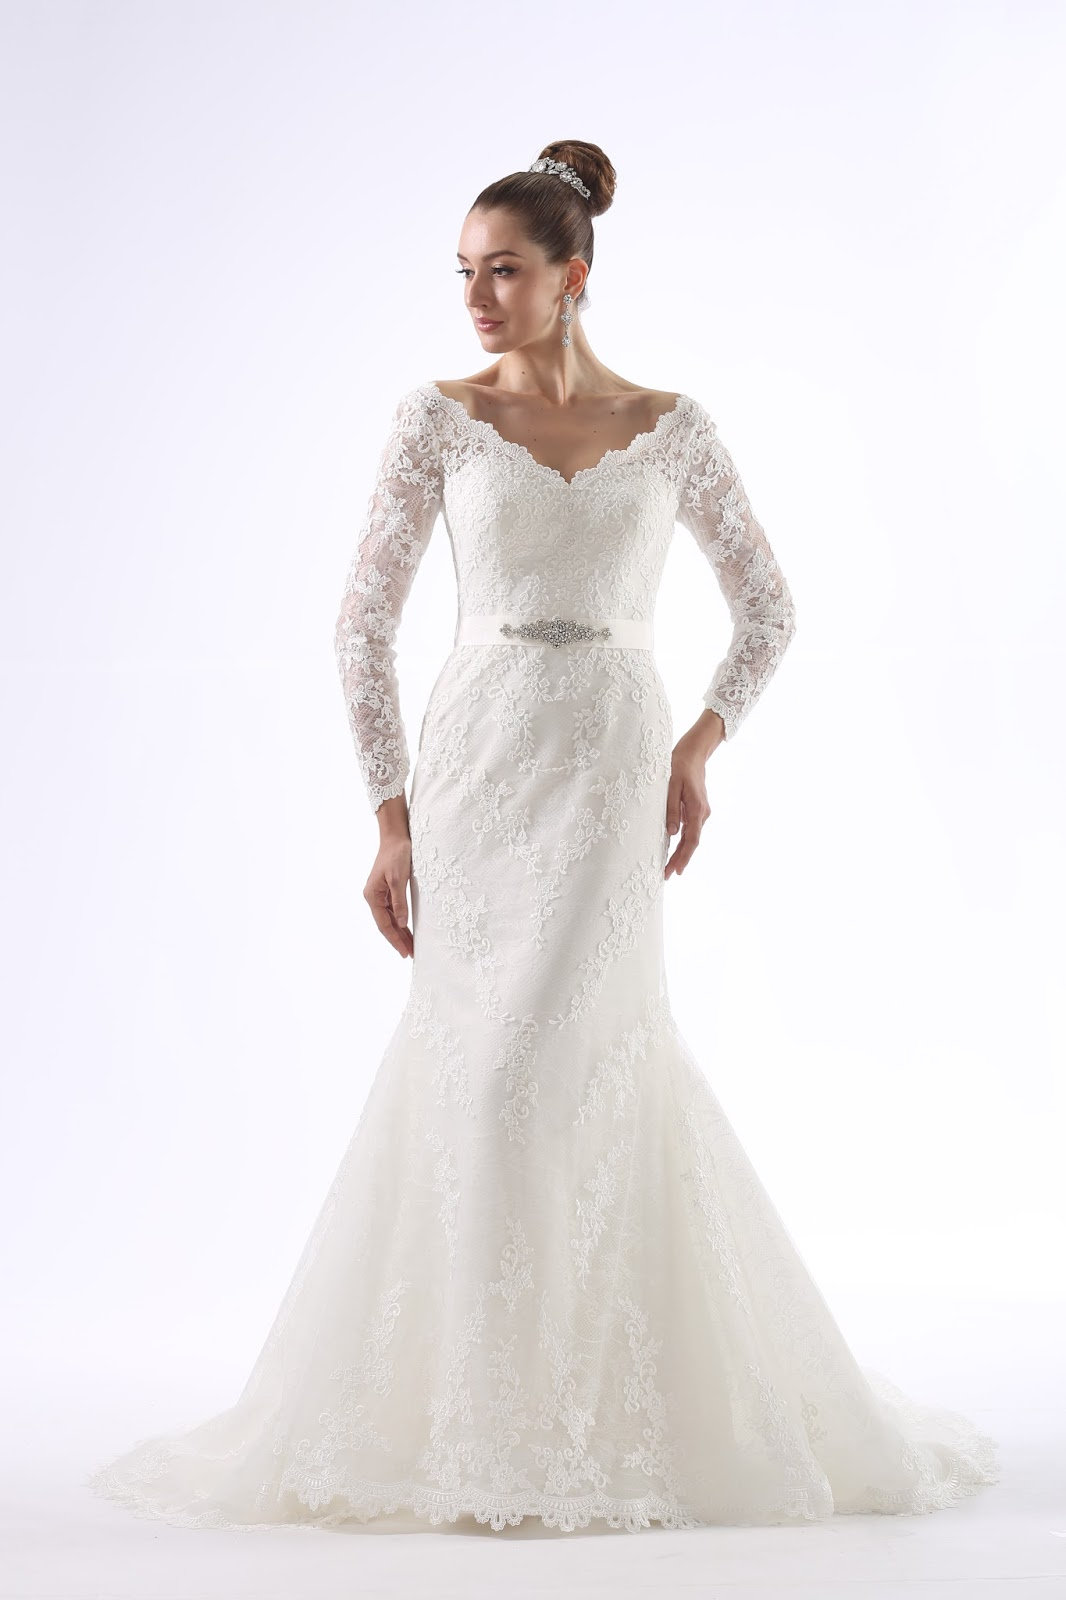 Wedding Dresses For Older Brides In  : Wedding dresses for mature brides mother distracted